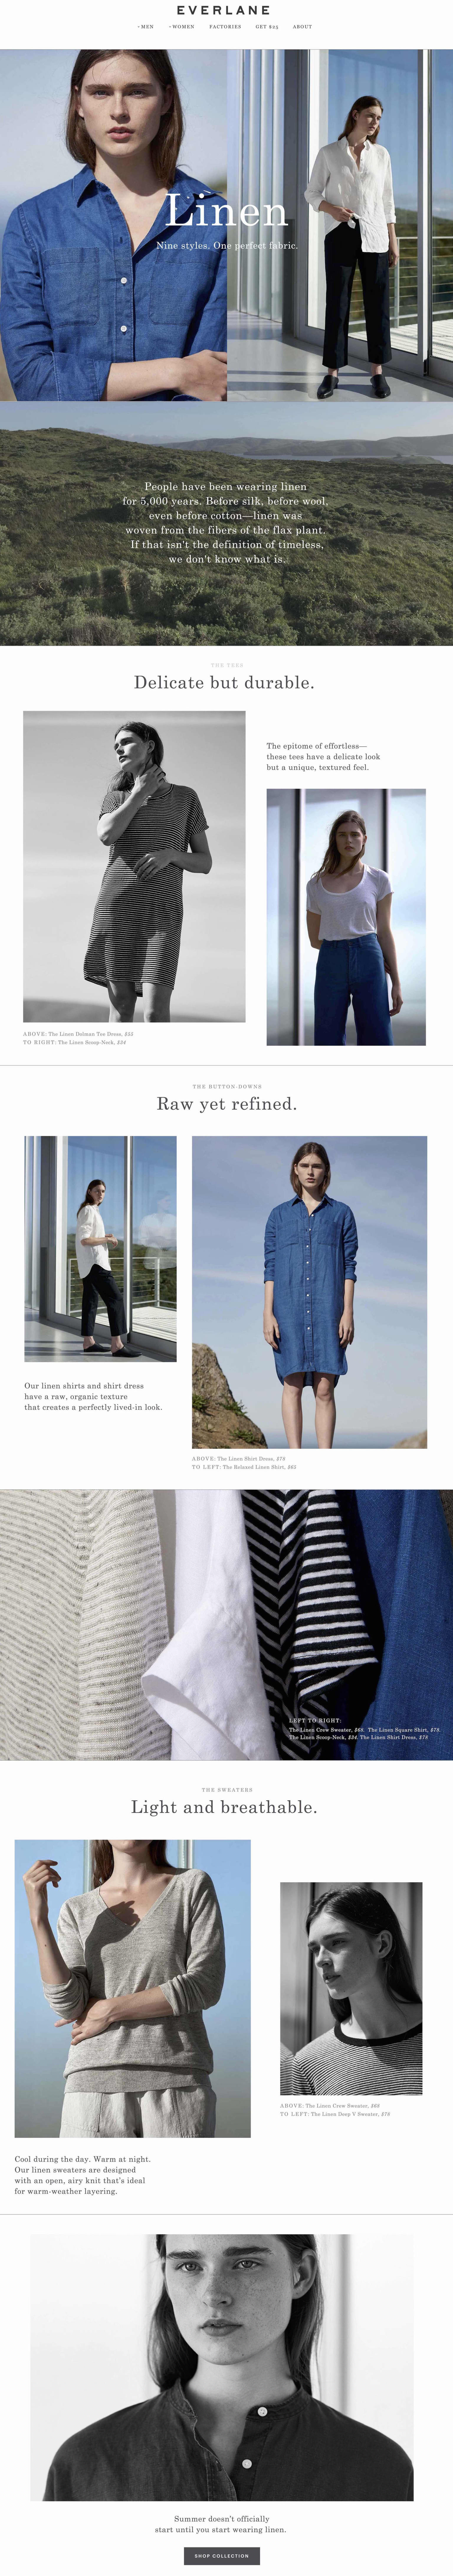 Everlane - Assorted Campaign Launches